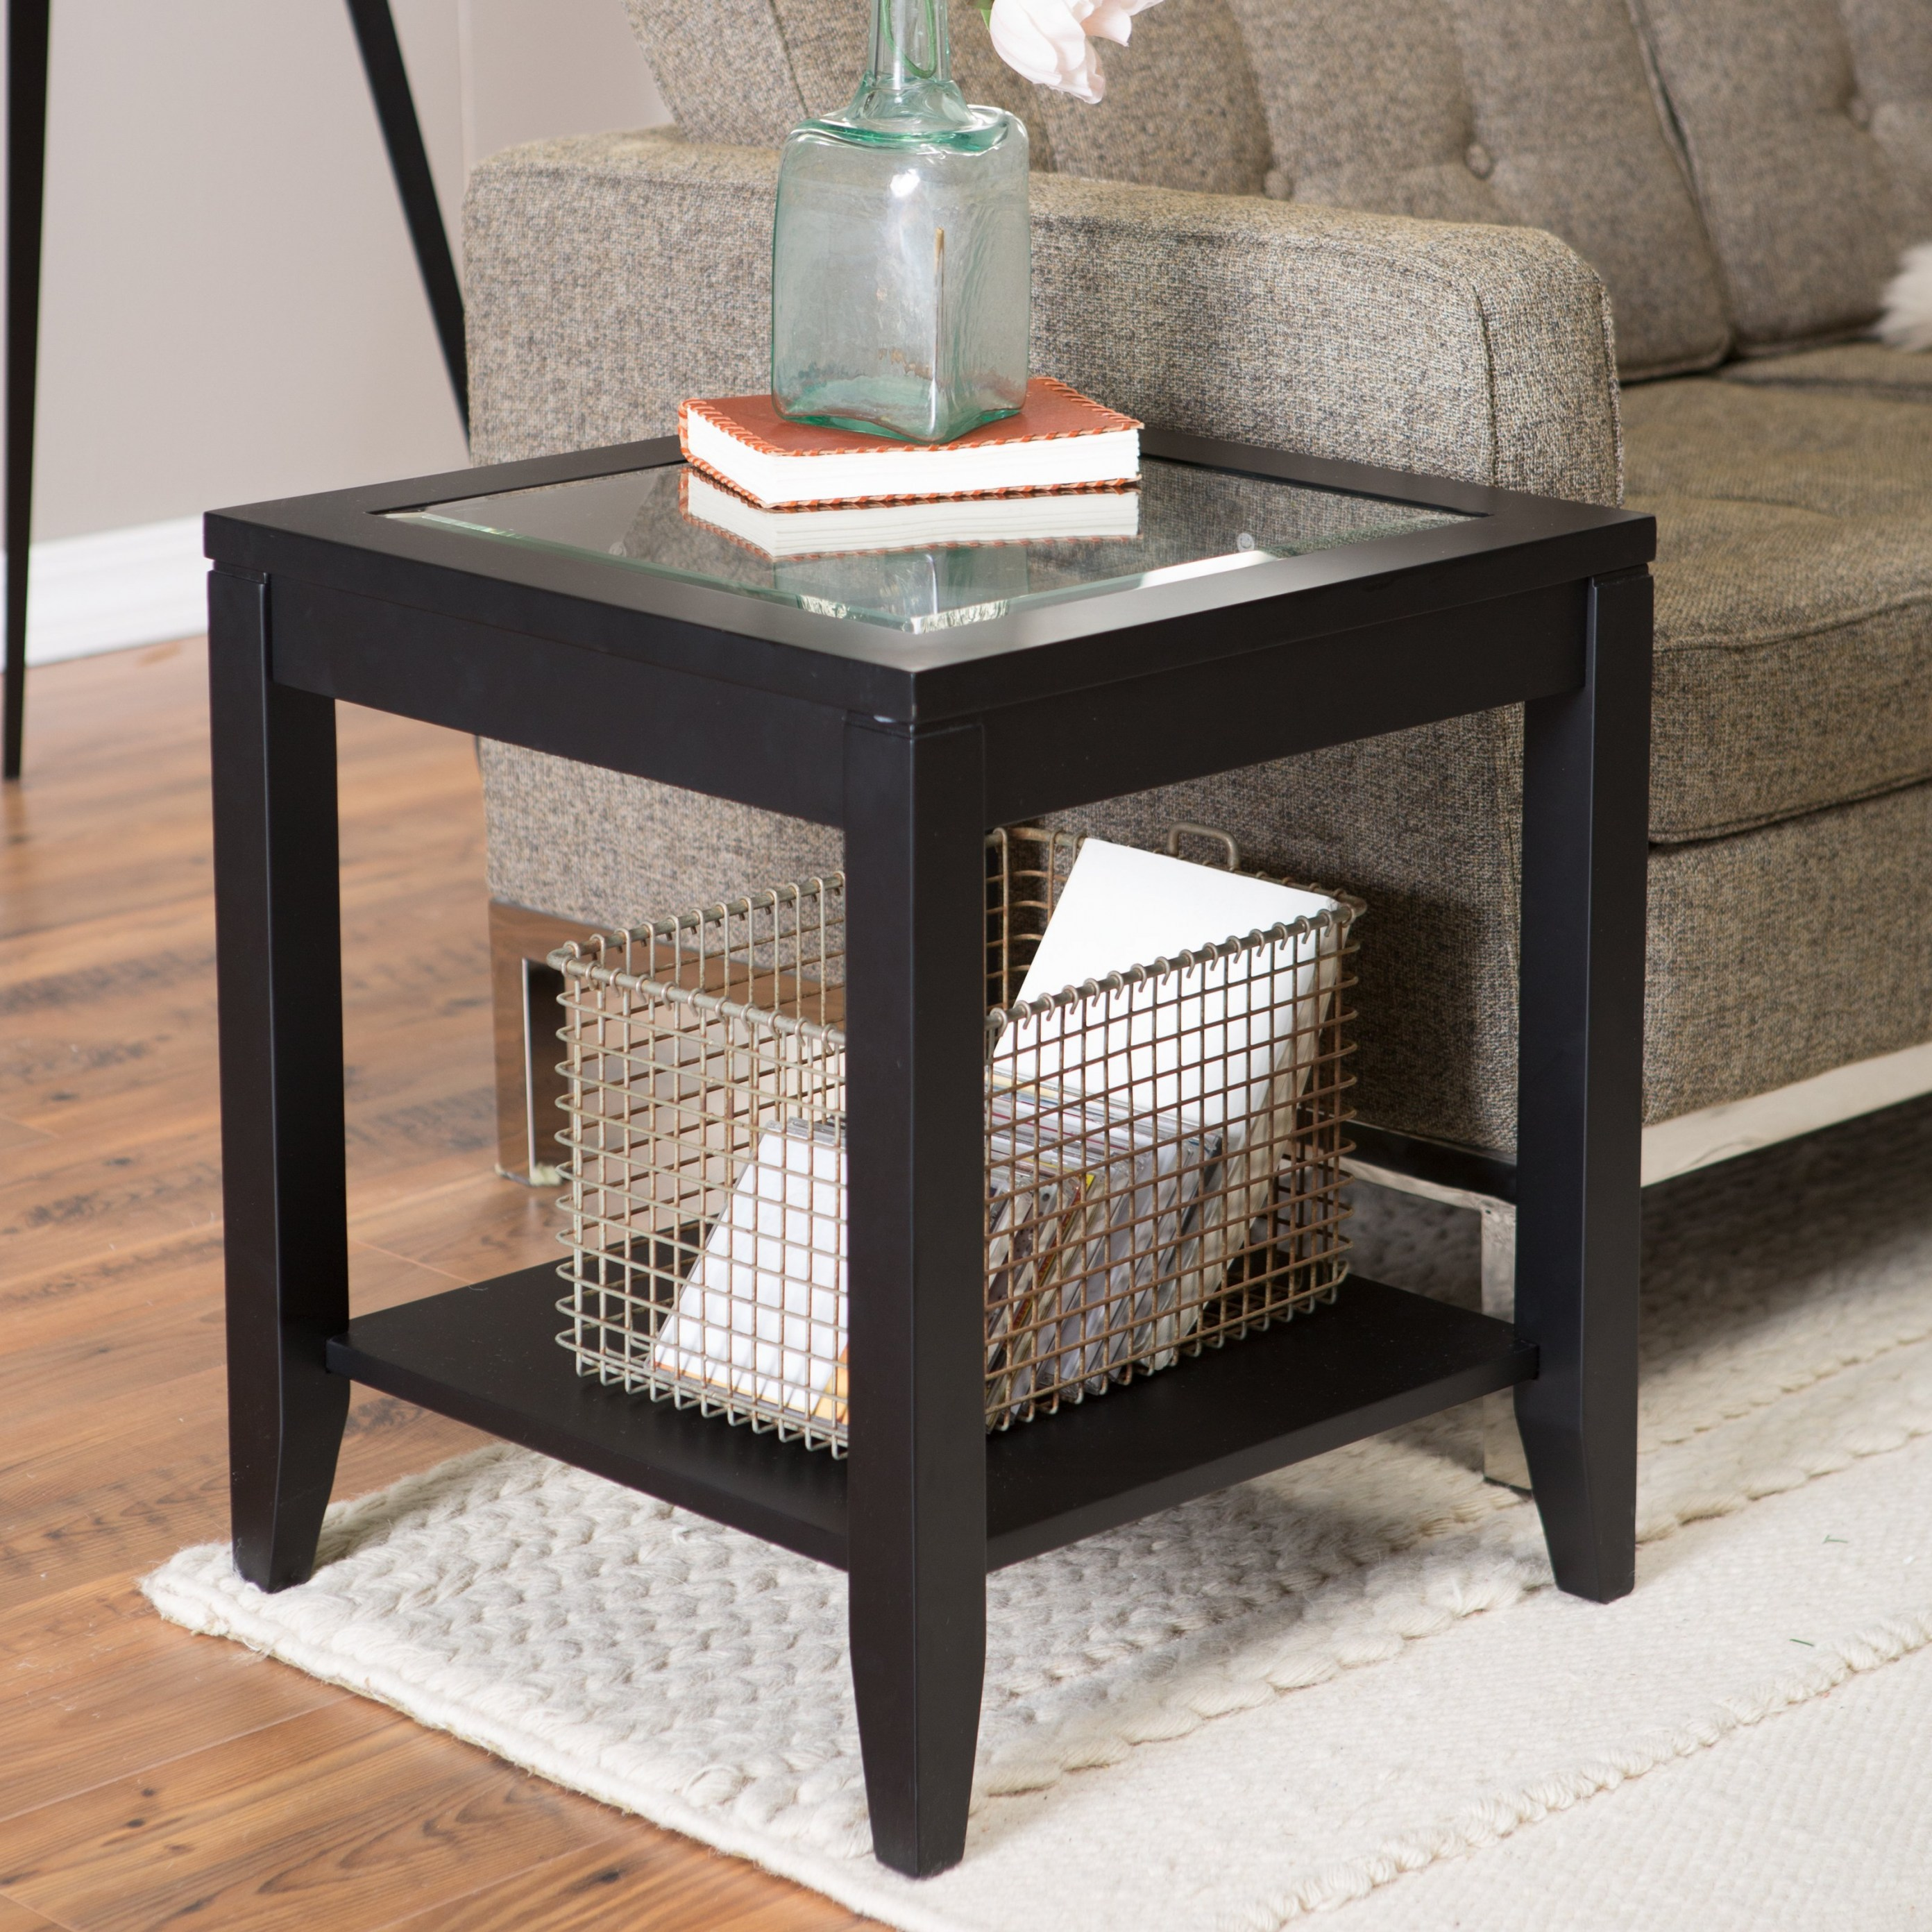 mirrored end table with drawers the outrageous awesome small peaceably coffee tables ideas extra fullsize target lamps sofa room stickley light oak patio side round living altra